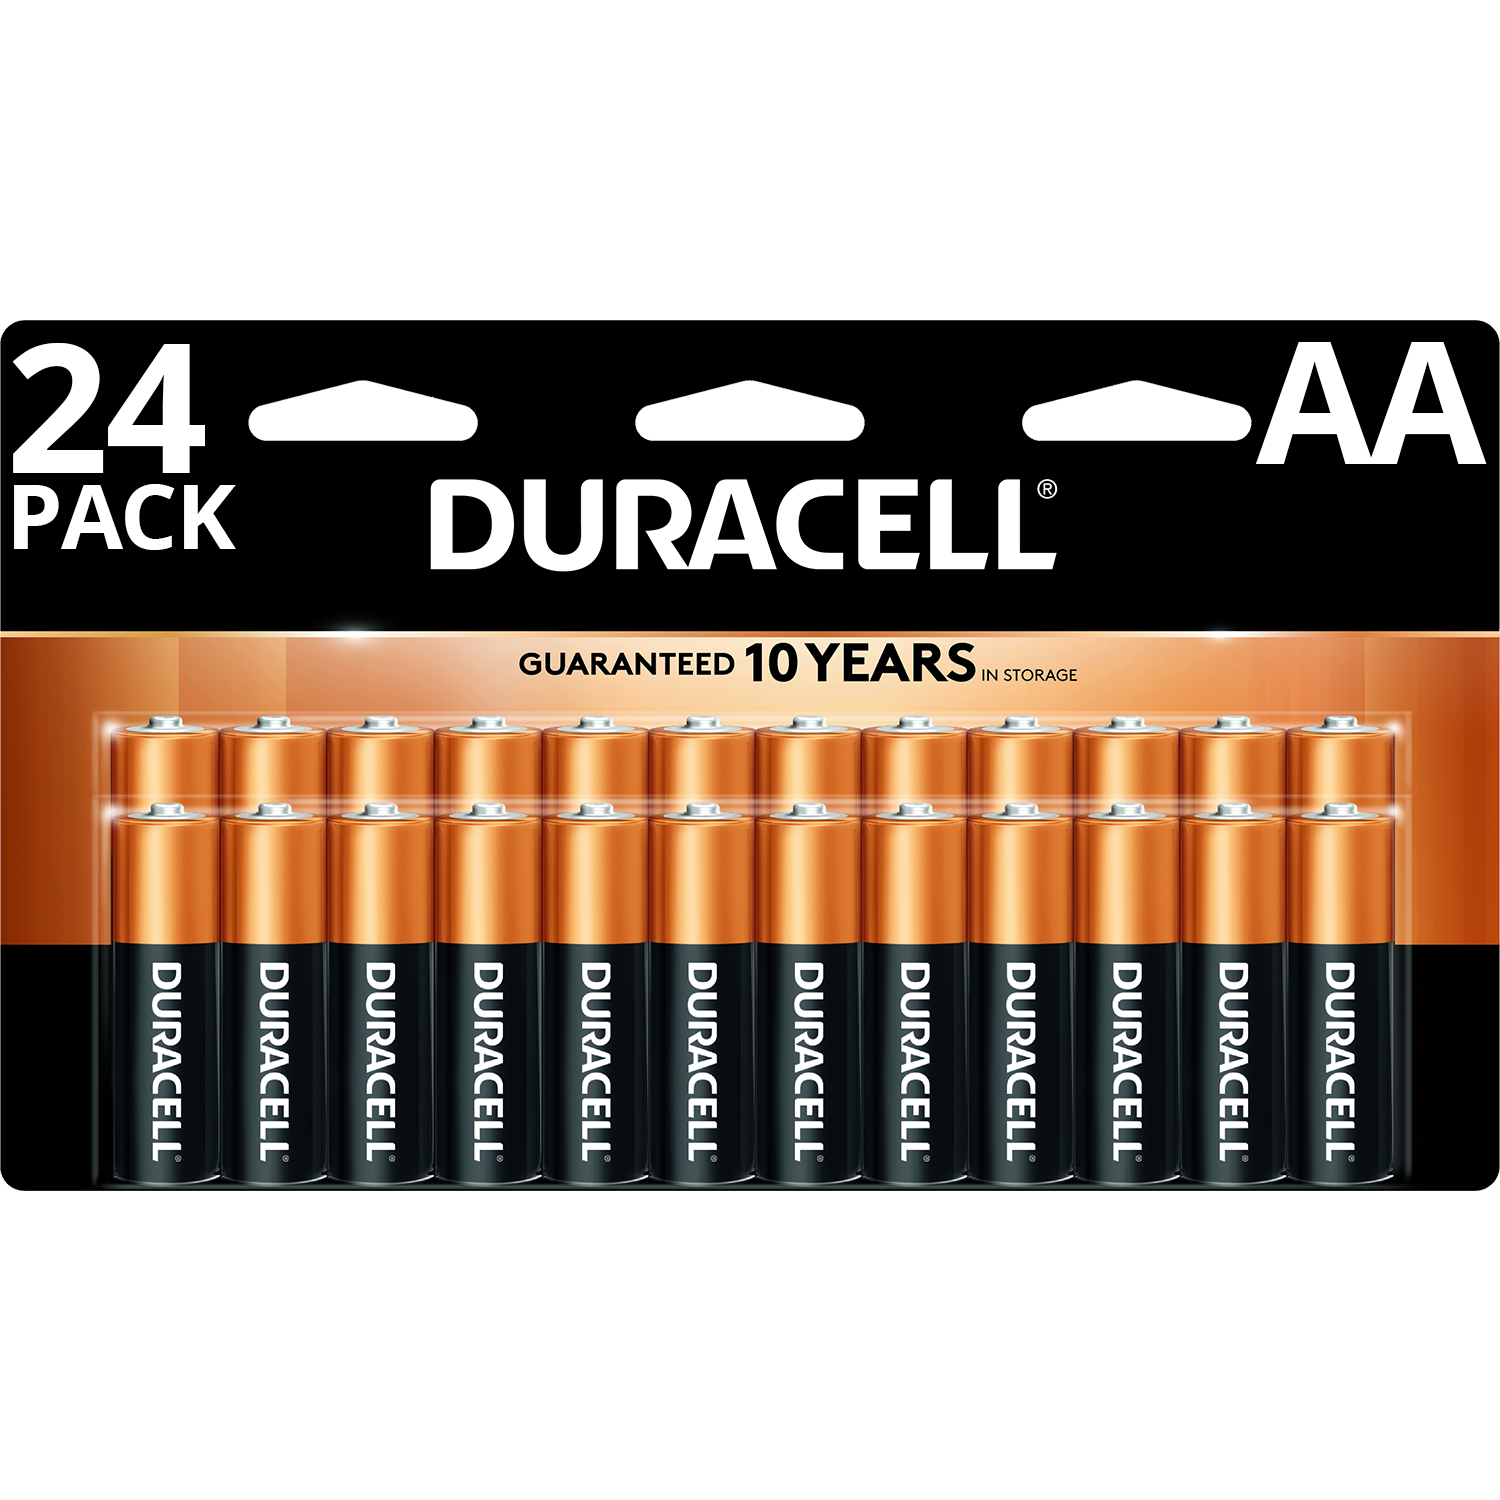 Duracell Coppertop AA Battery, Long Lasting Double A Batteries, 24 Pack